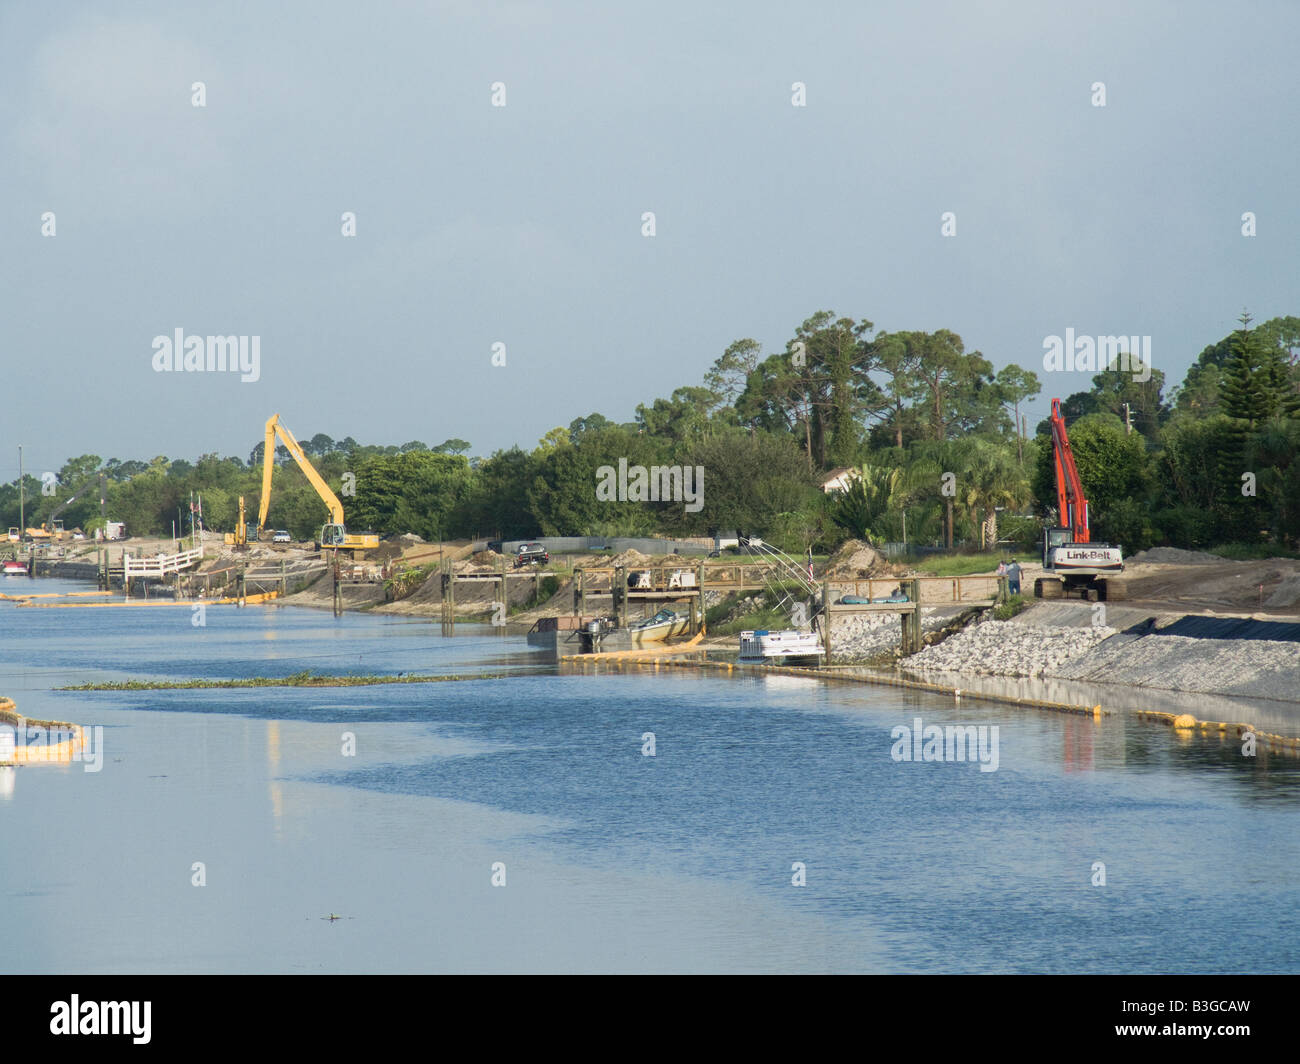 canal bank improvement reinforcement - Stock Image